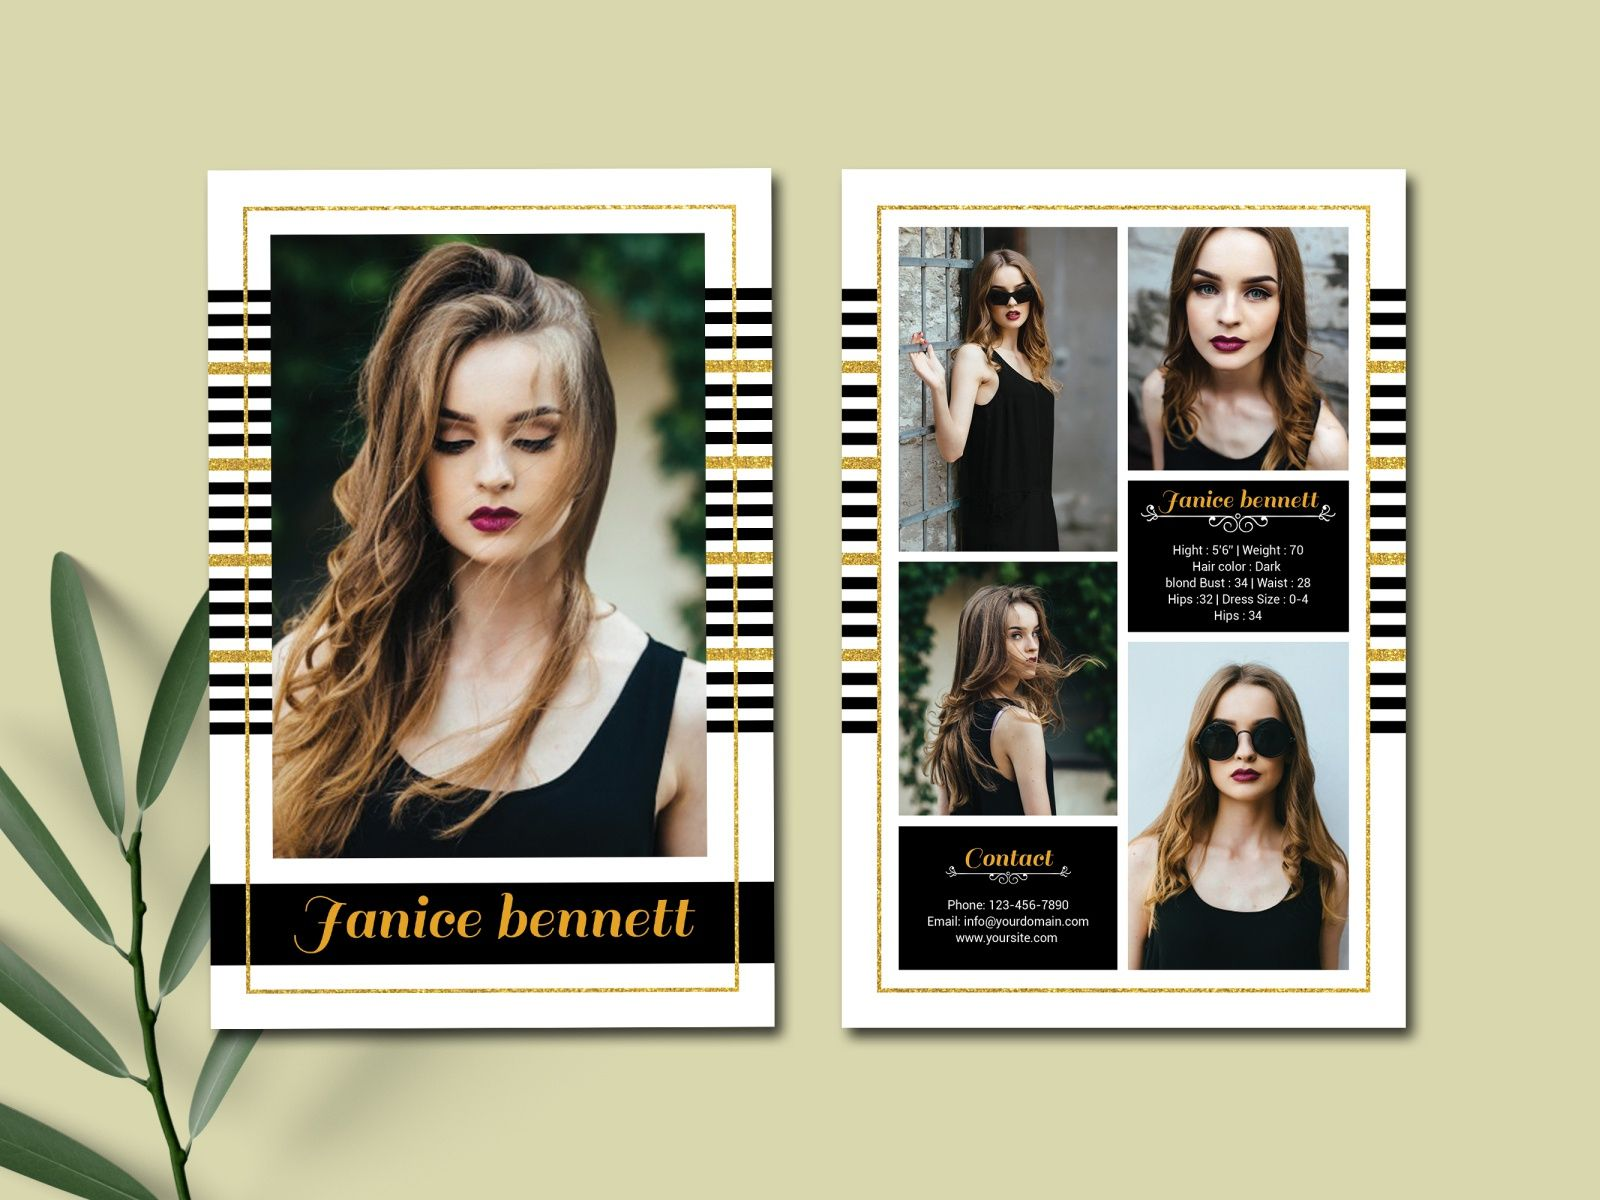 Model Comp Card Templateultimatetemplate On Dribbble Inside Download Comp Card Template Best Business Te In 2020 Model Comp Card Card Template Professional Templates